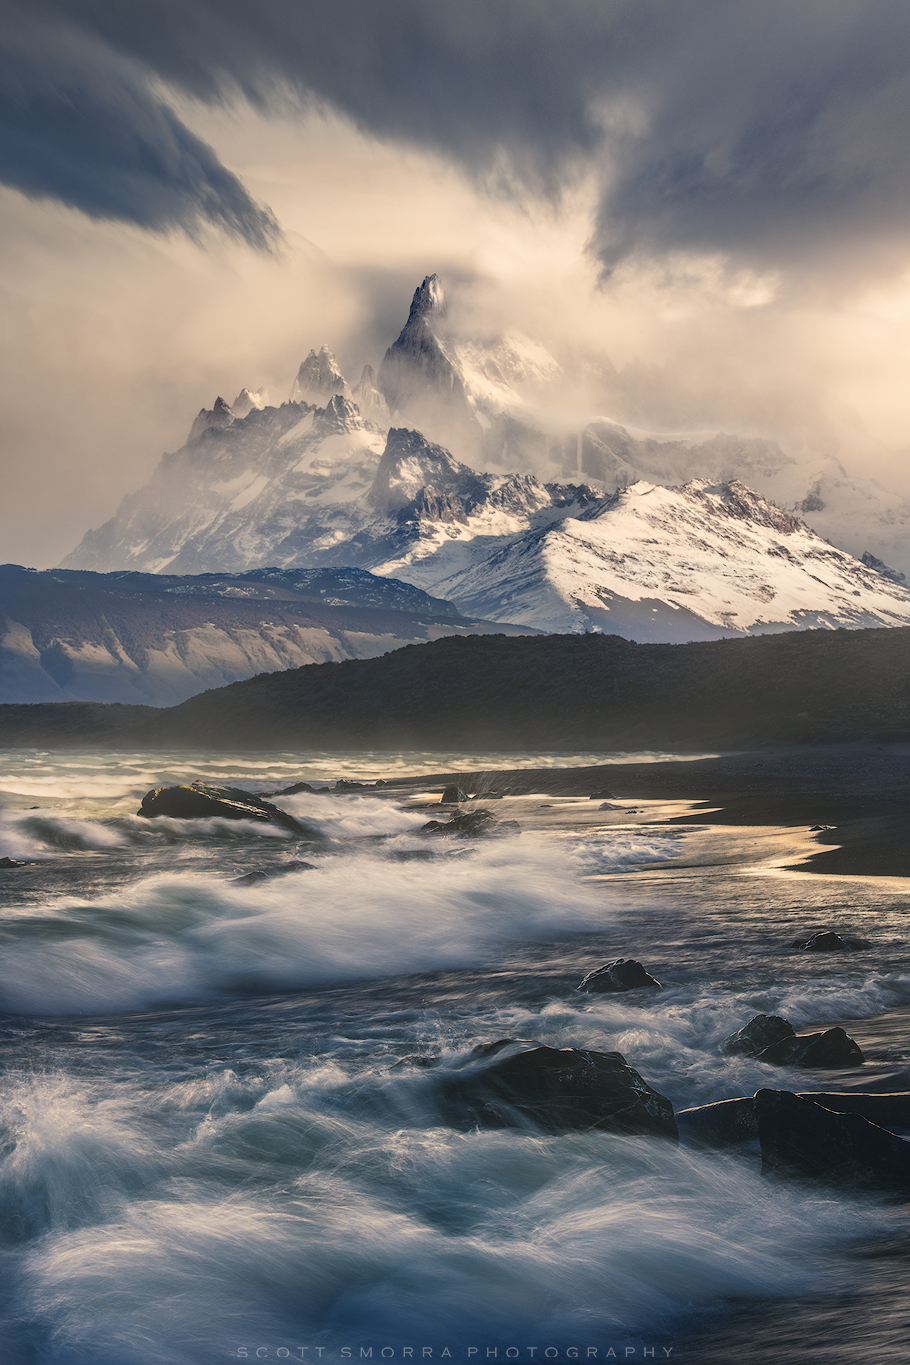 Fine Art Limited Edition of 100 - The peaks in Parque Nacional Los Glaciares tower above crashing waves in Patagonia, Argentina...